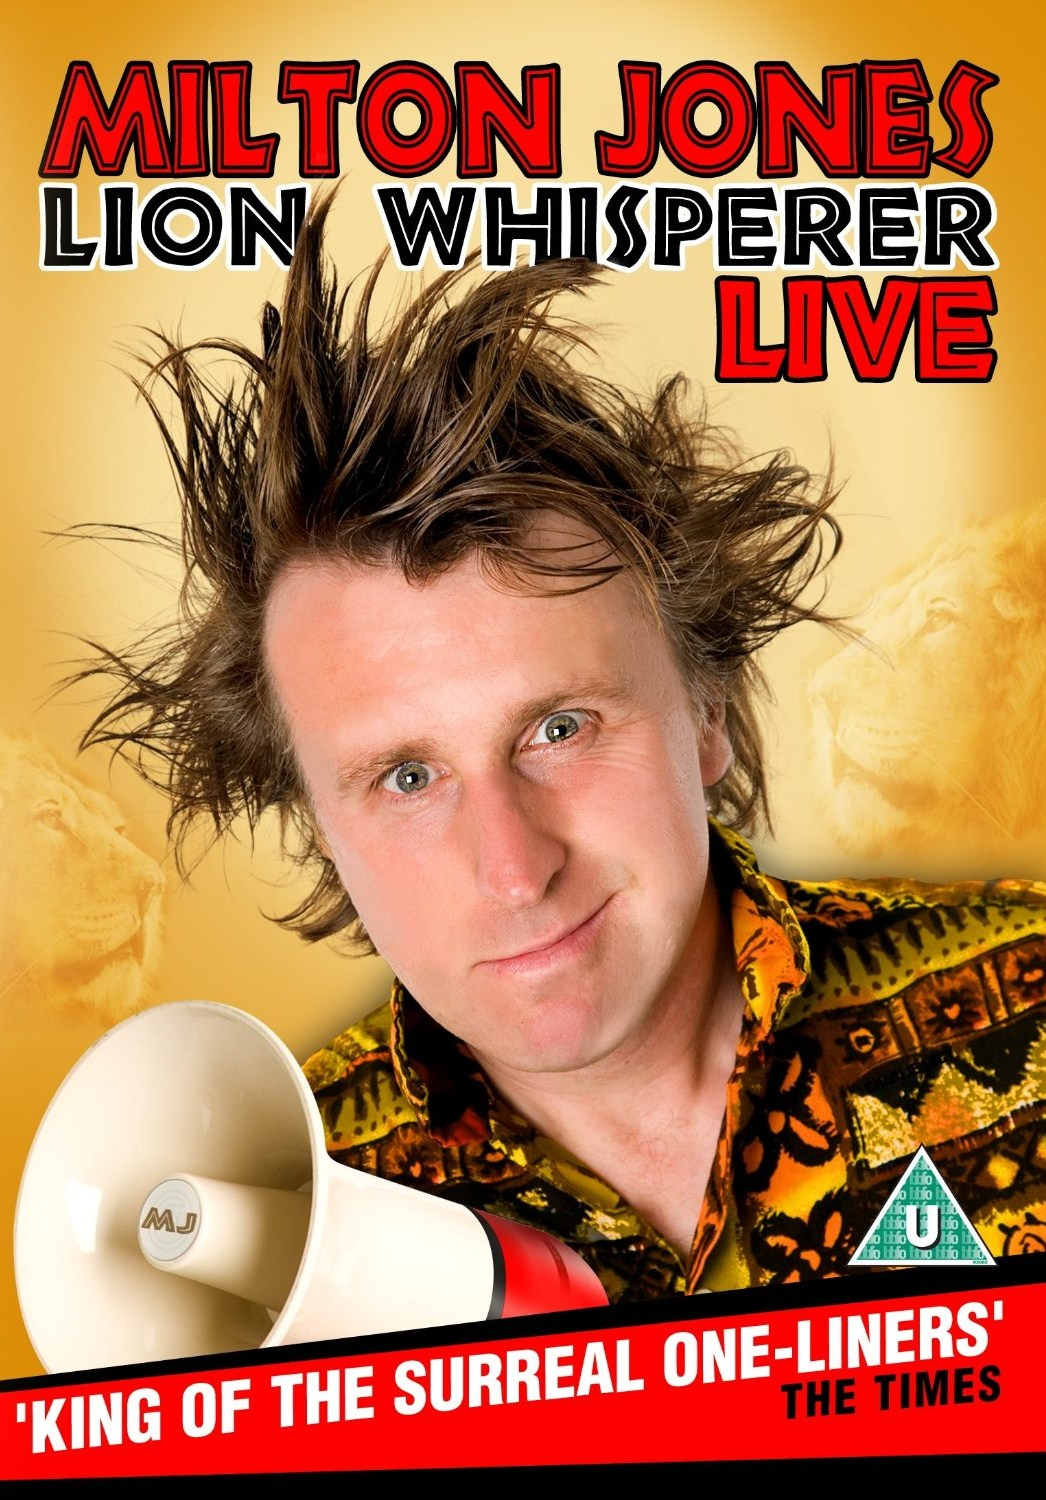 Milton Jones lion-whisperer reviewed in Phantom Tollbooth